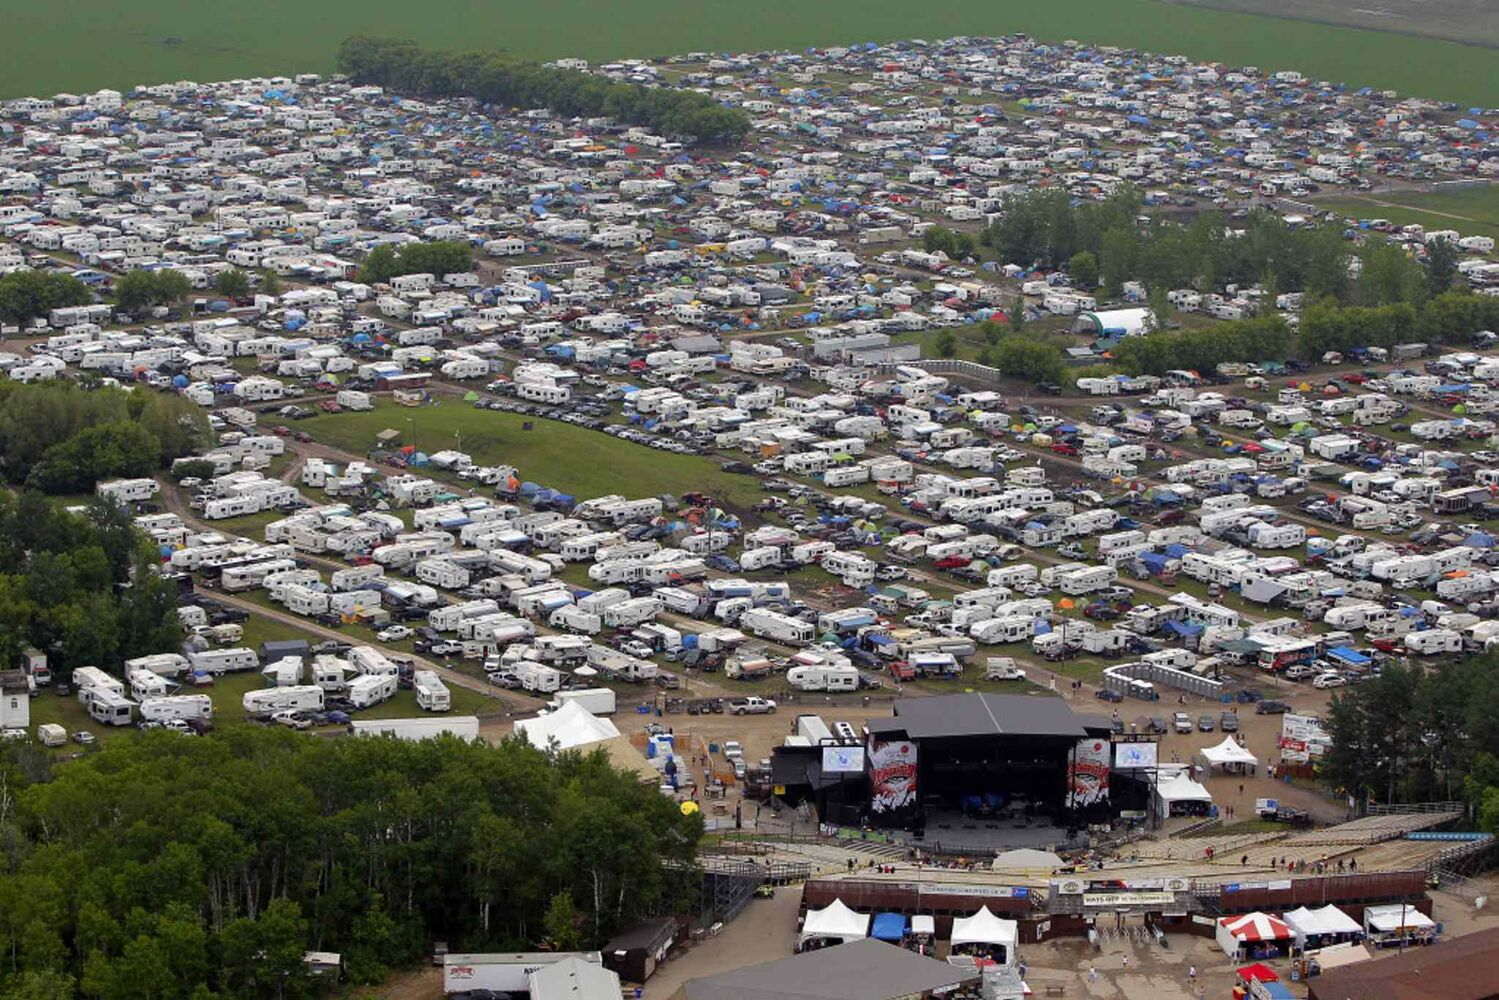 An aerial view of the festival site taken during a chopper ride from Gimli-based Prairie Helicopters.